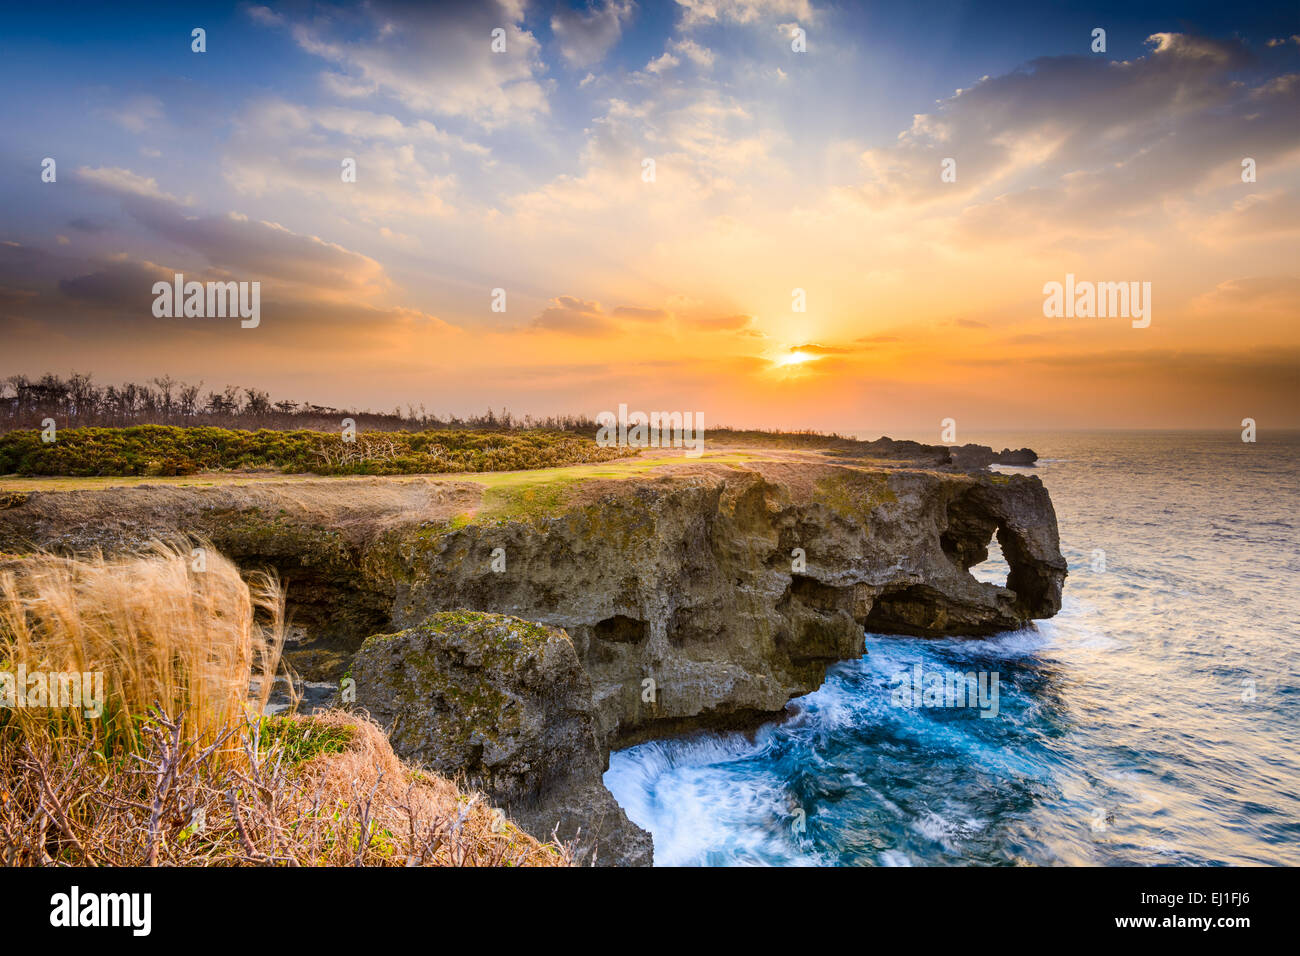 L'Okinawa, Japon à Manzamo Cape pendant le coucher du soleil. Photo Stock